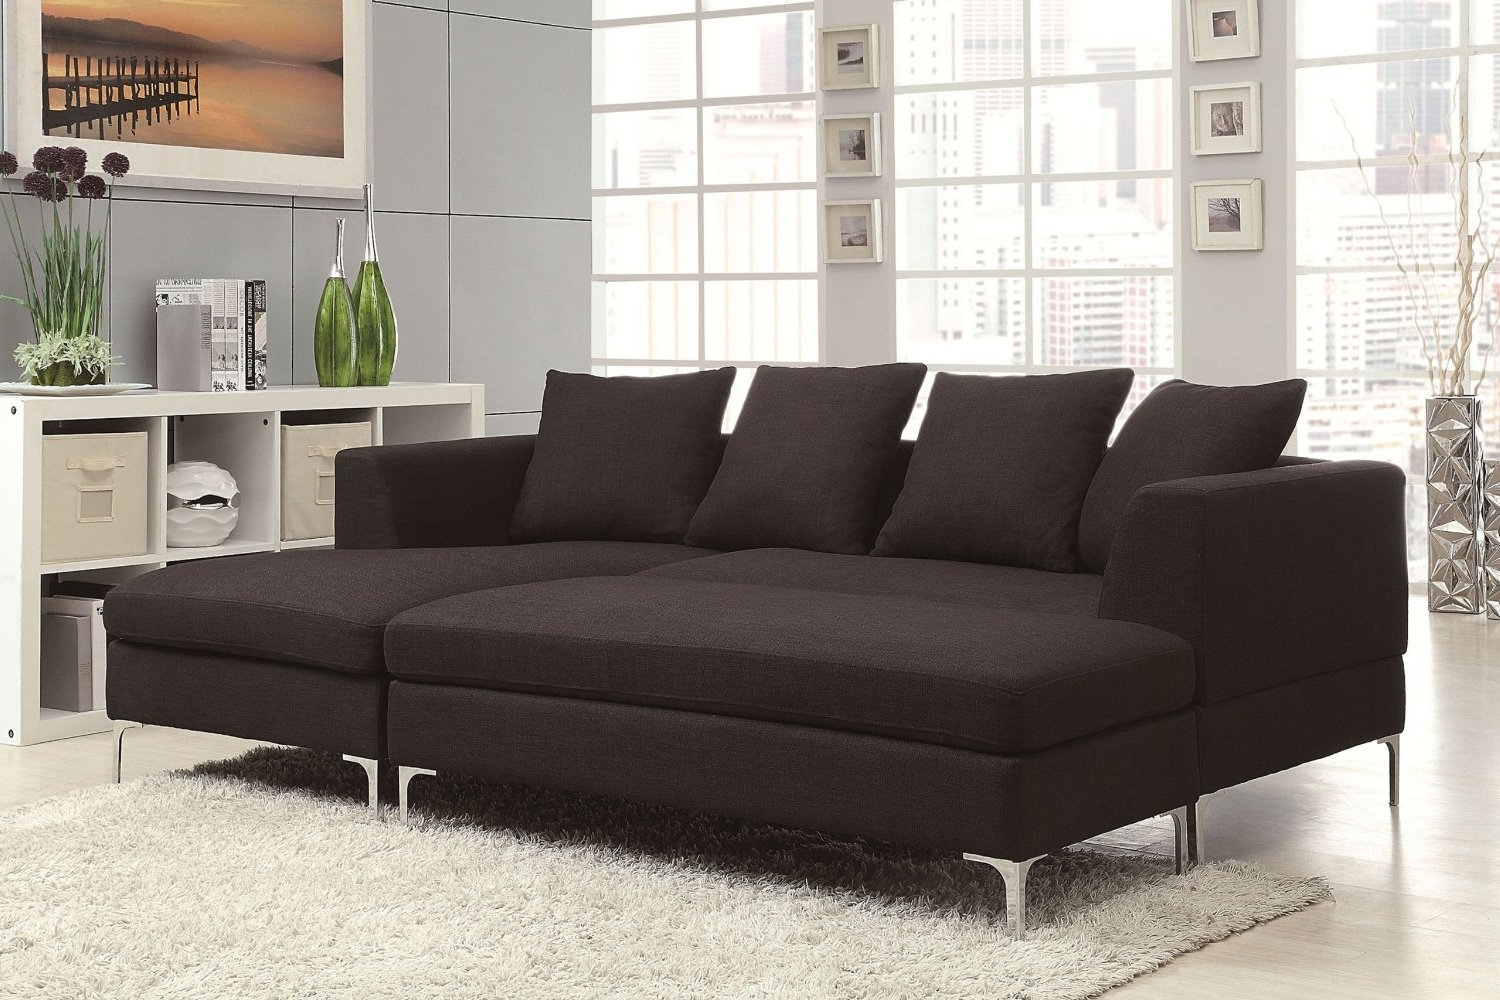 Beautiful Sectional Sofas With Chaise Lounge Gallery – Liltigertoo Pertaining To Well Liked Adjustable Sectional Sofas With Queen Bed (View 5 of 15)